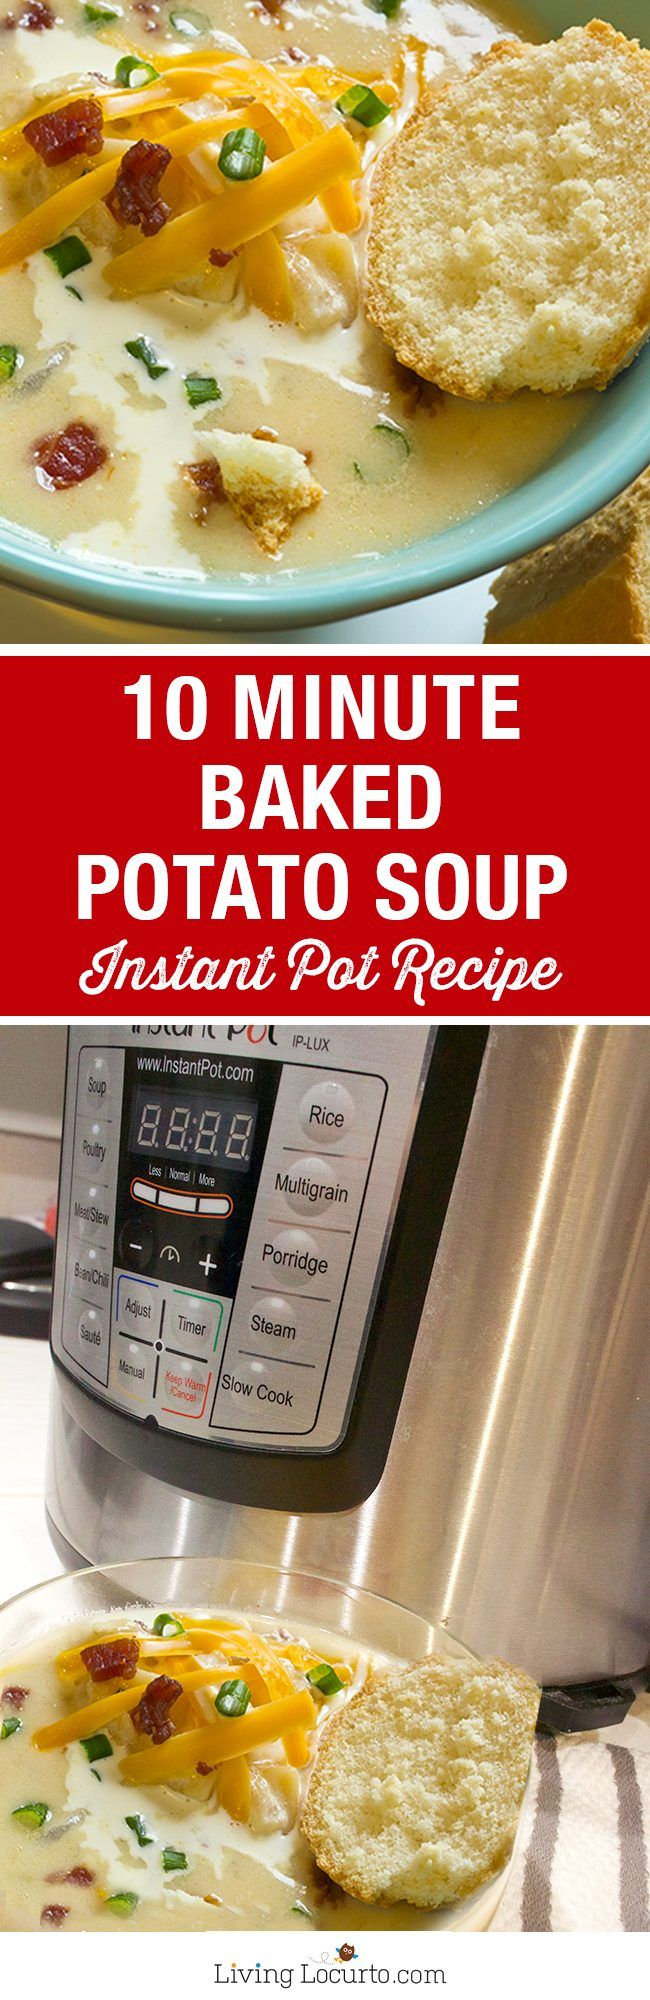 10 Minute Baked Potato Soup is the perfect quick and easy hearty meal! With a pressure cooker like the Instant Pot, you'll have dinner in minutes. Gluten Free Recipe #instantpot #potato #soup #pressurecooker #recipe #dinner #bakedpotato #instantpotsoup #potatosoup #pressurecooking #glutenfree #potatosouprecipe #easyrecipe #livinglocurto